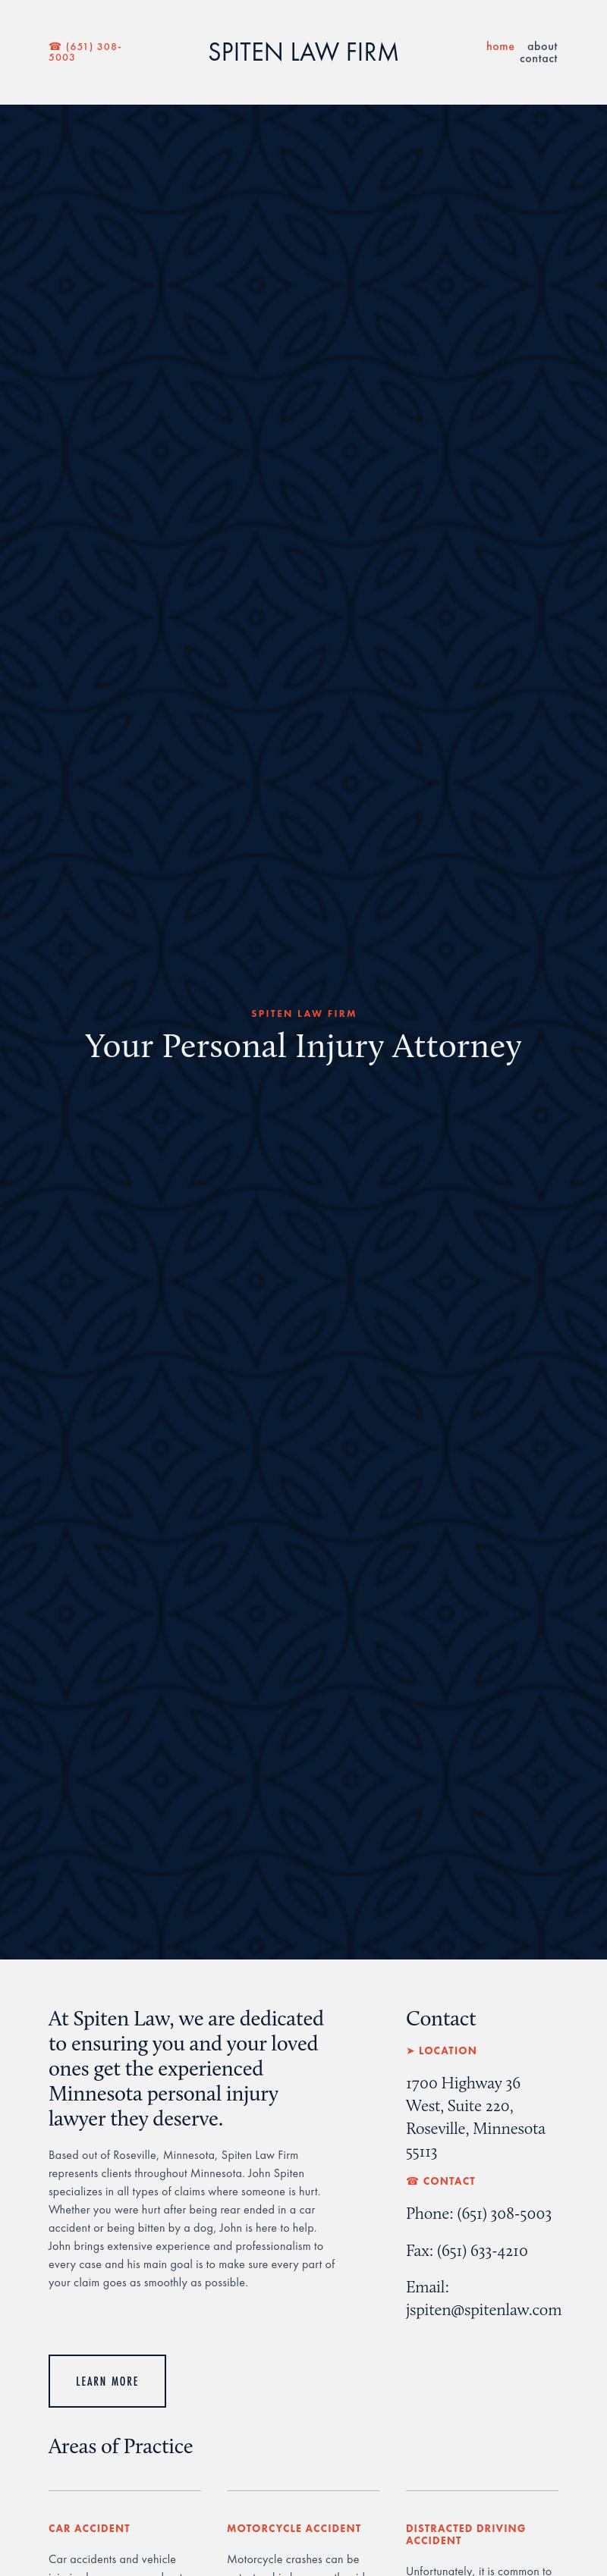 Kennedy Michael H Atty - Saint Paul MN Lawyers